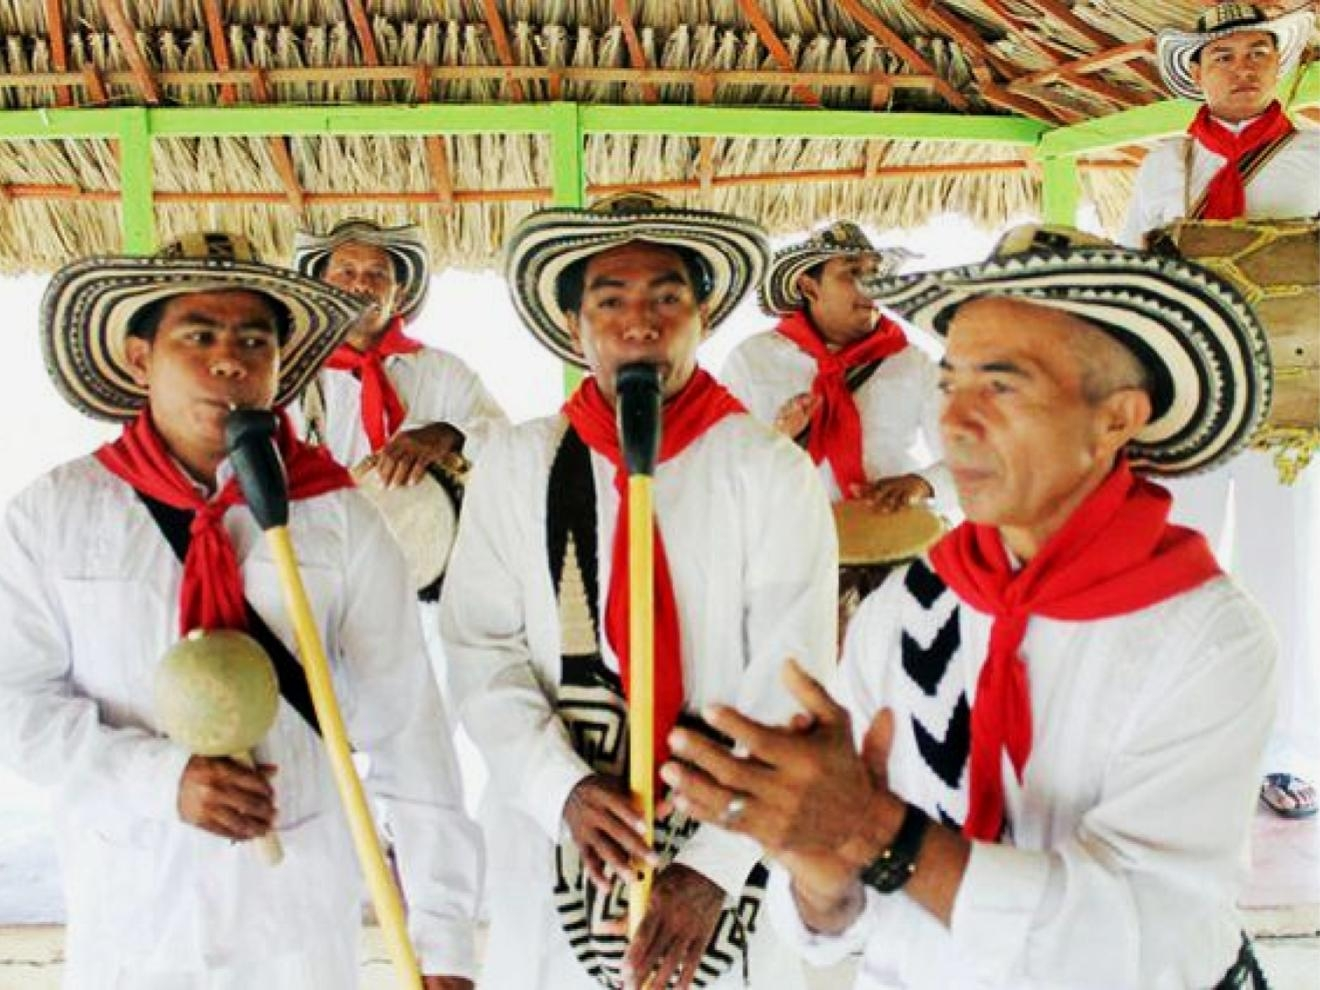 Gaiteros playing the traditional instrument